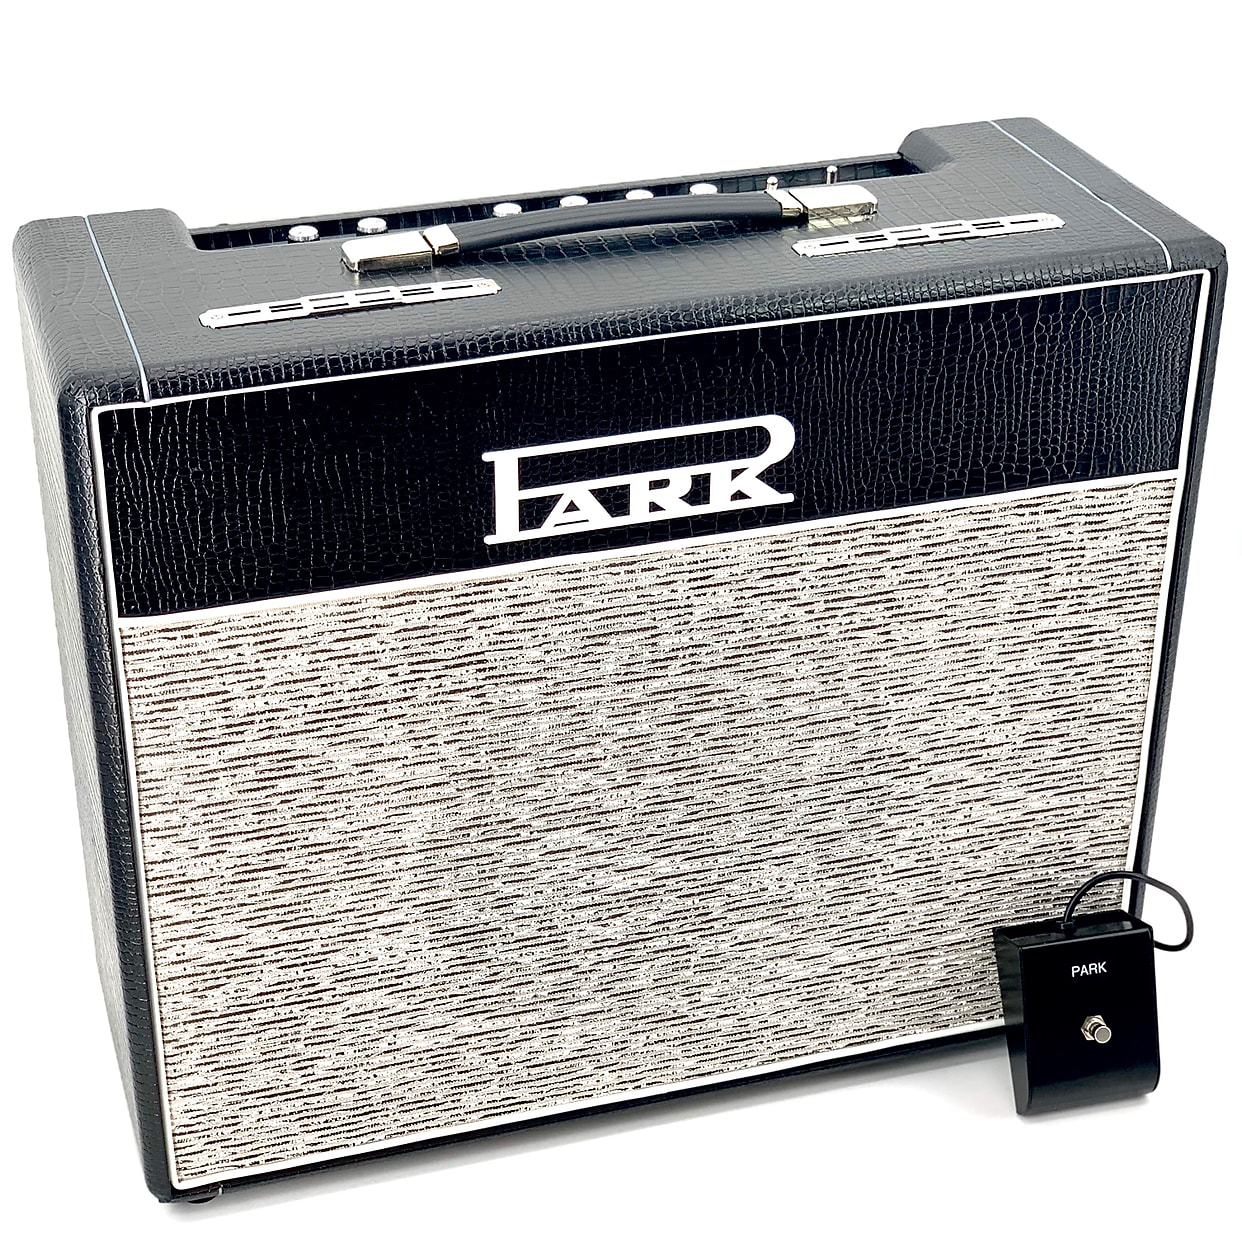 "Park 1800 Combo 18 Watt 12"" Combo - BCR Exclusive-  Black Gator - FREE Shipping!"